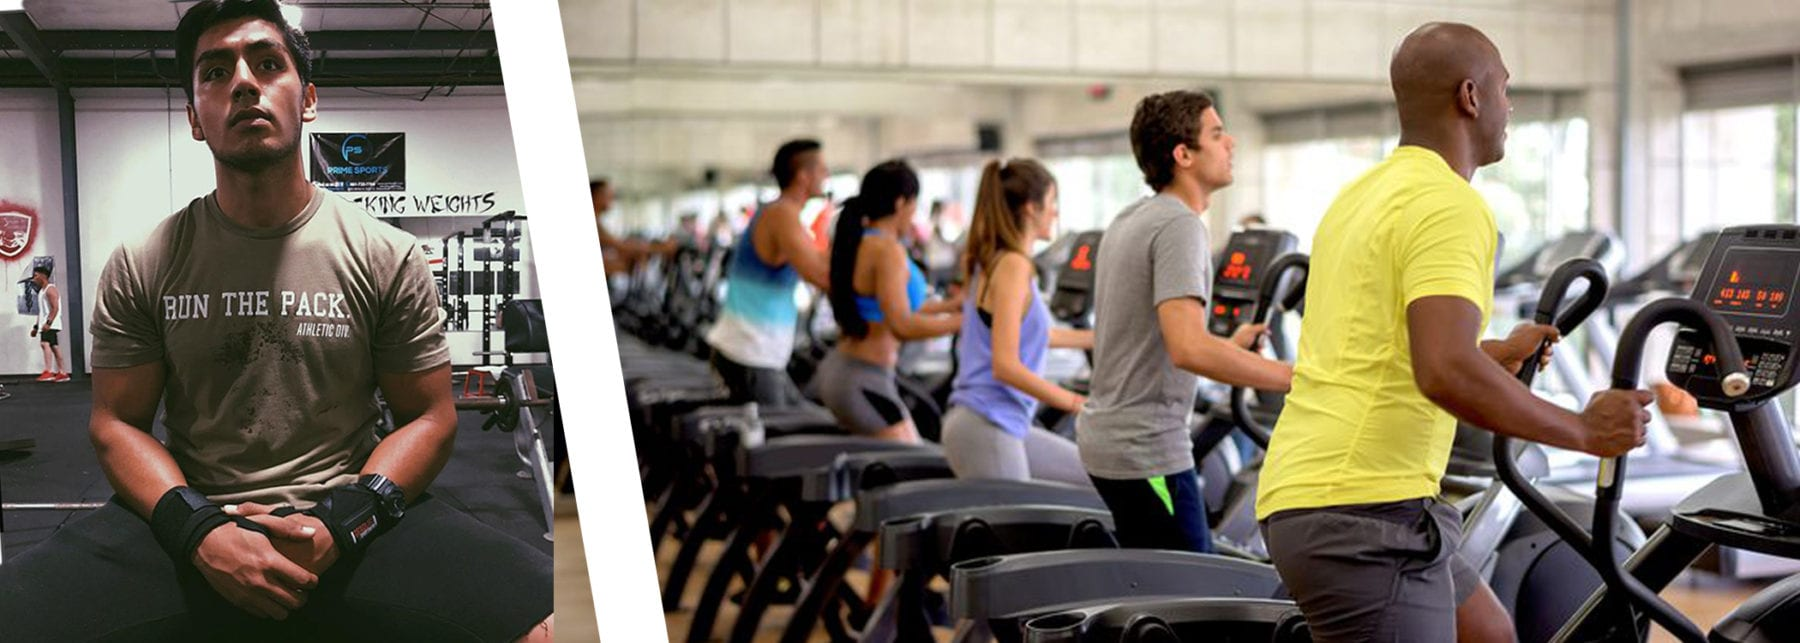 d9b0bd645112a 4 Ways to Promote and Sell your Fitness Clothing Line On and Offline.